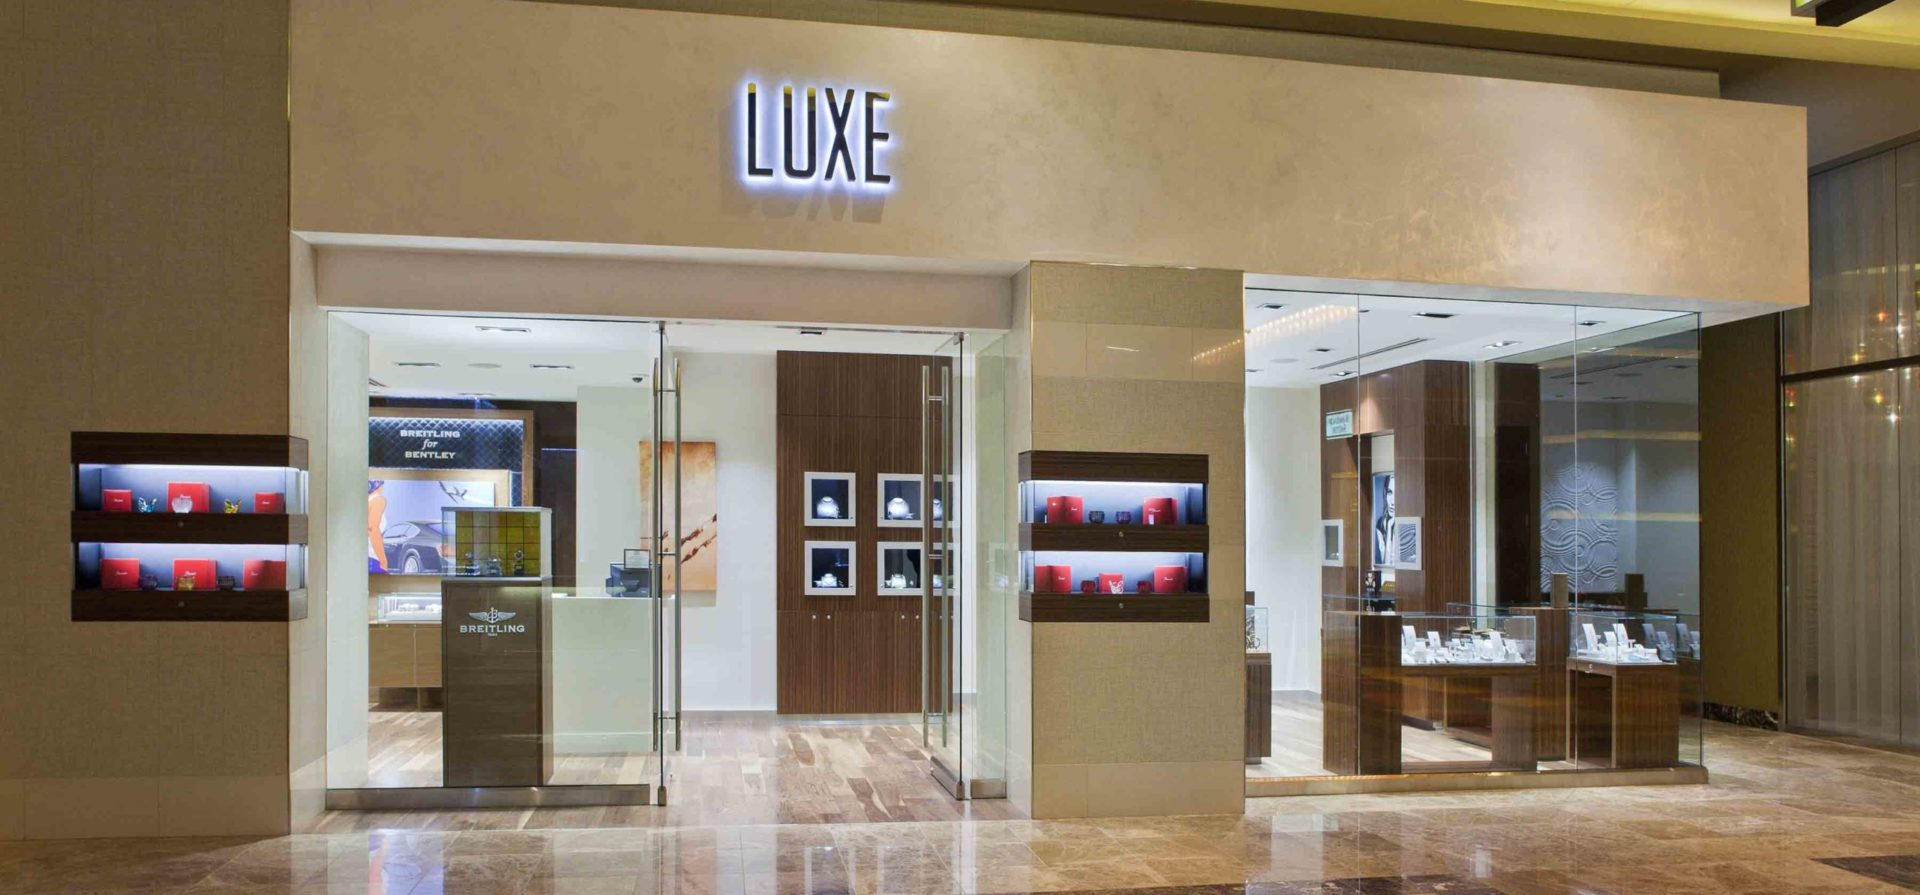 Golden Nugget Retail Stores: Luxe